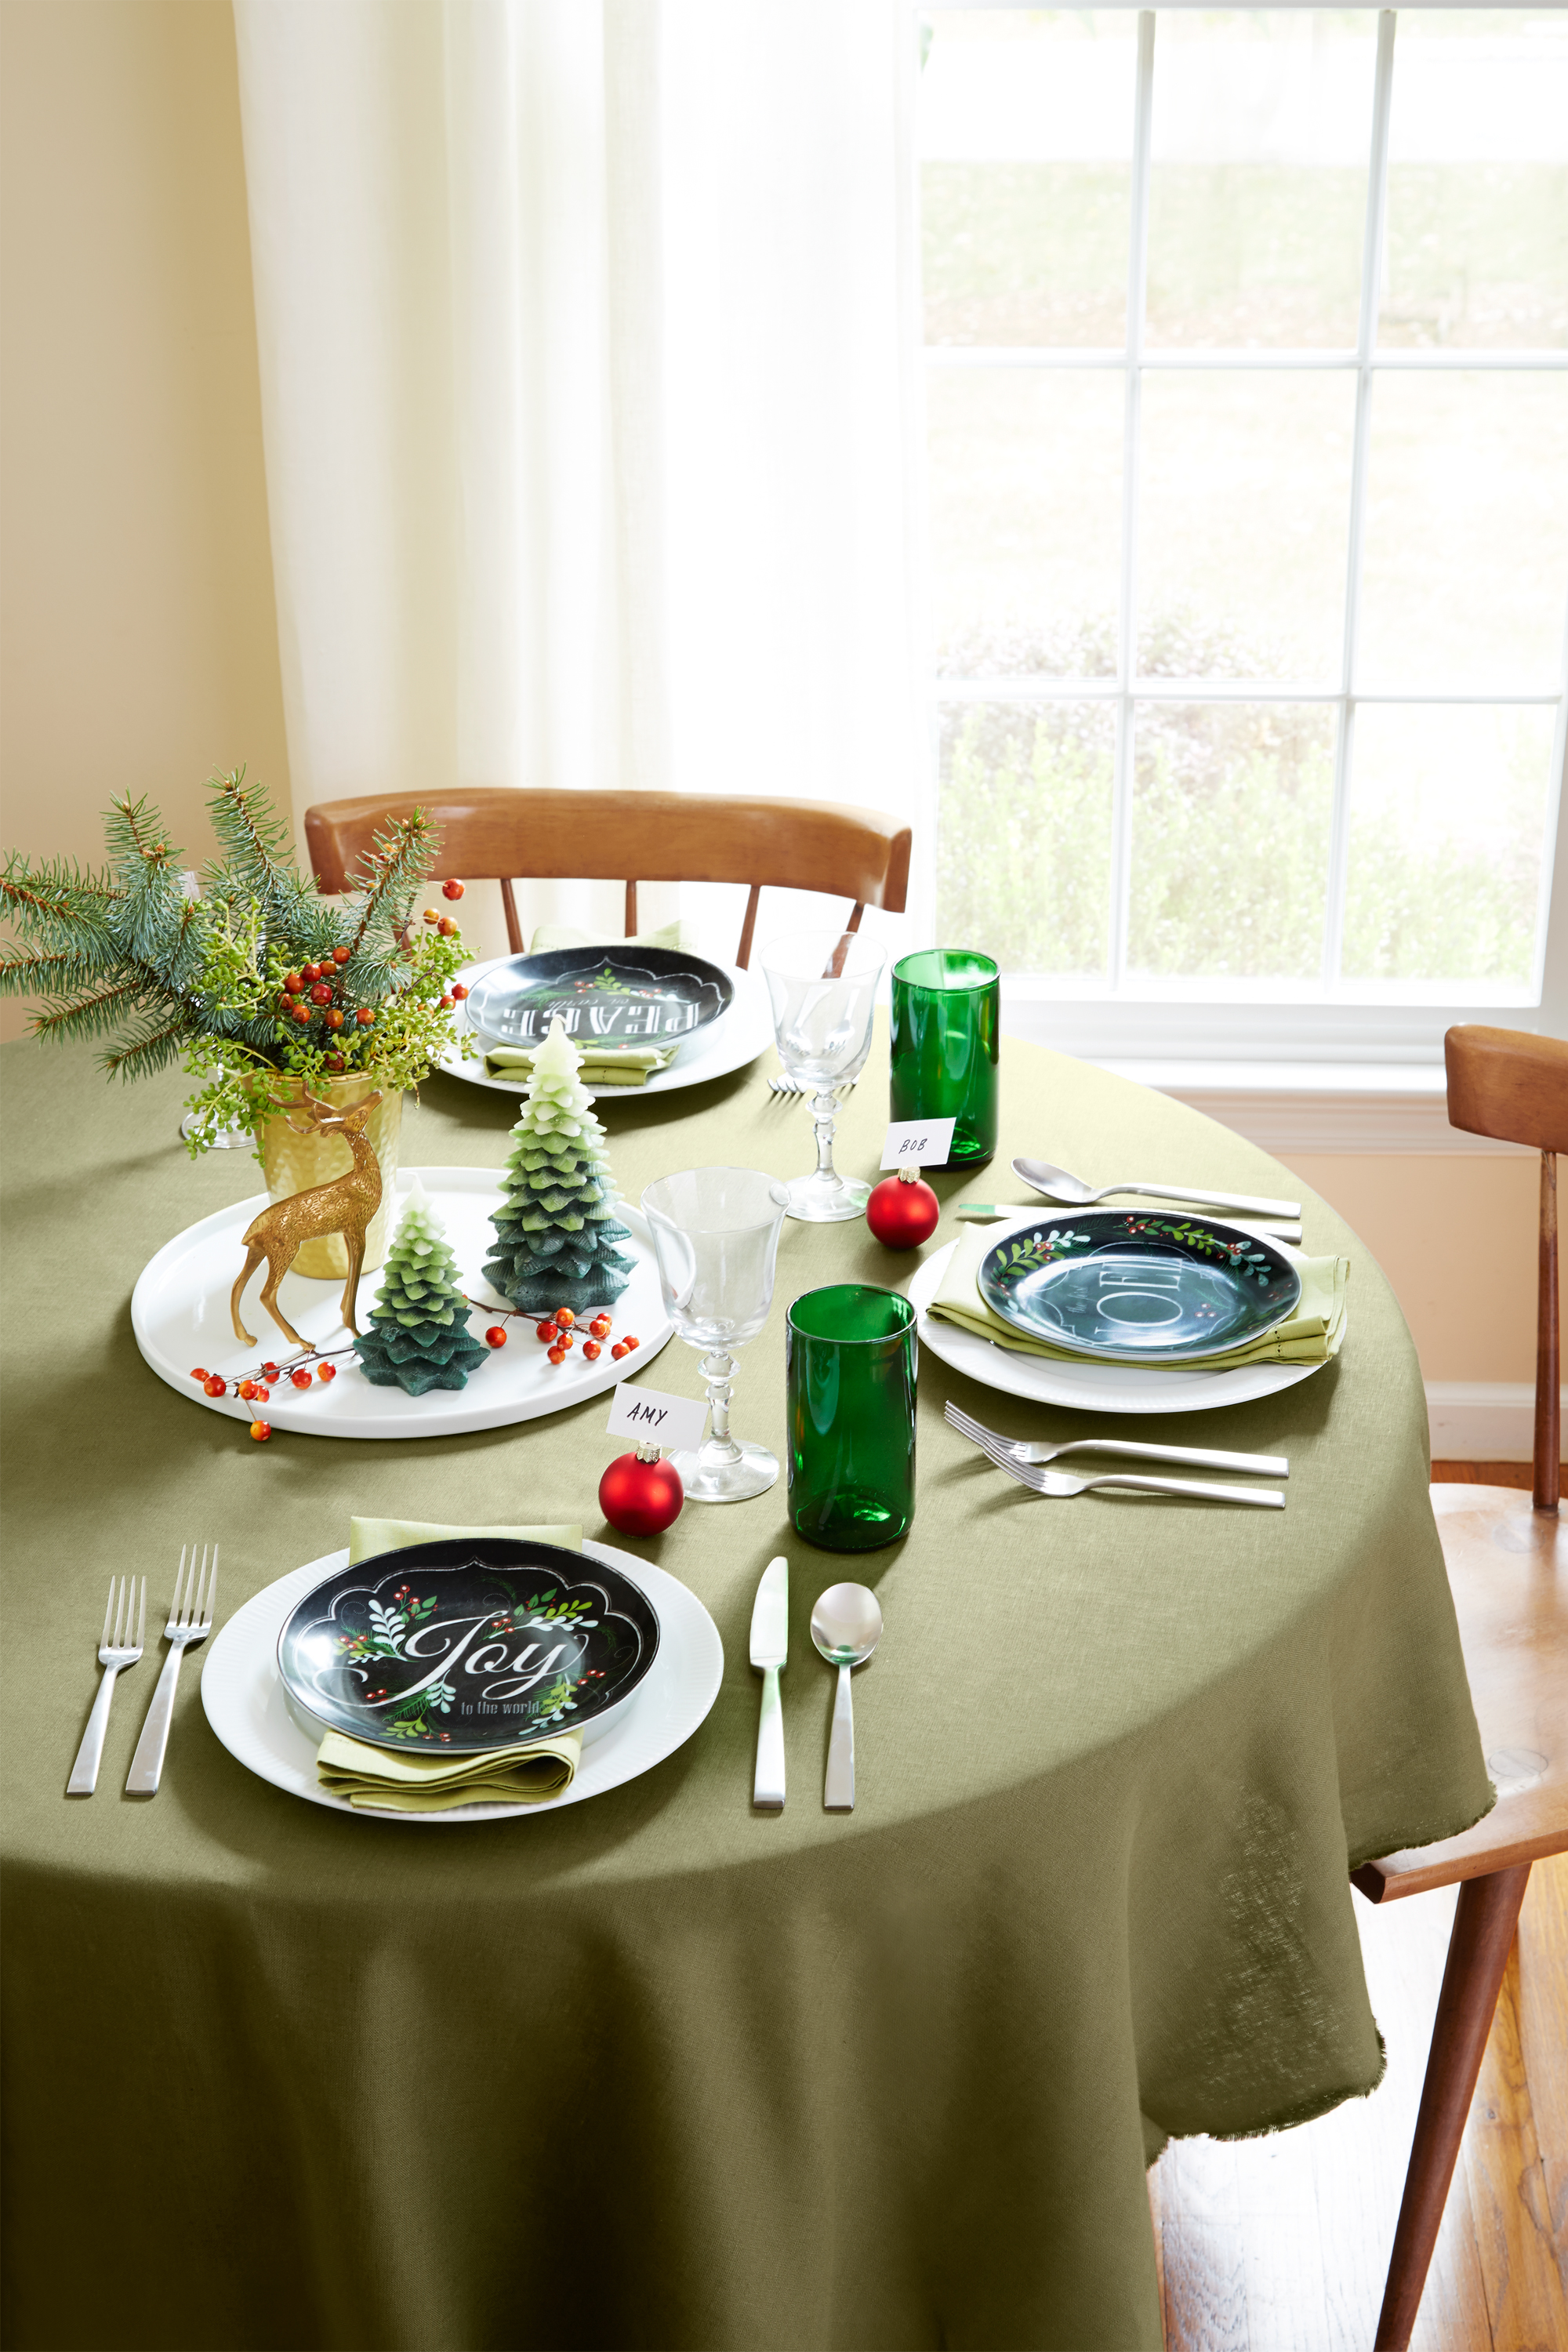 Christmas Lunch Table Decoration Ideas : Christmas table decorations centerpieces ideas for